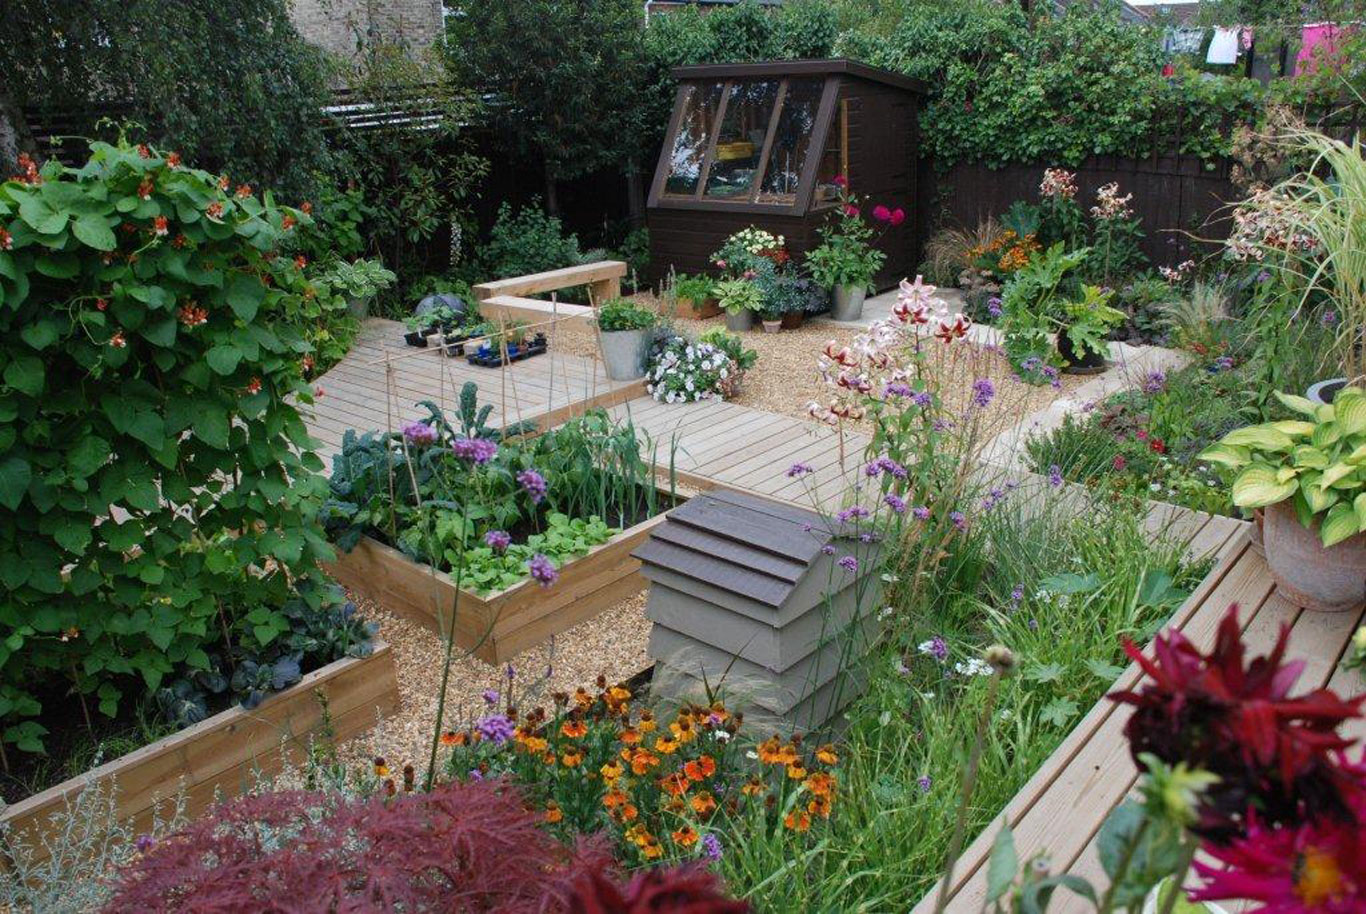 Garden landscapers in essex and london west essex landscapes for Garden design landscaping company